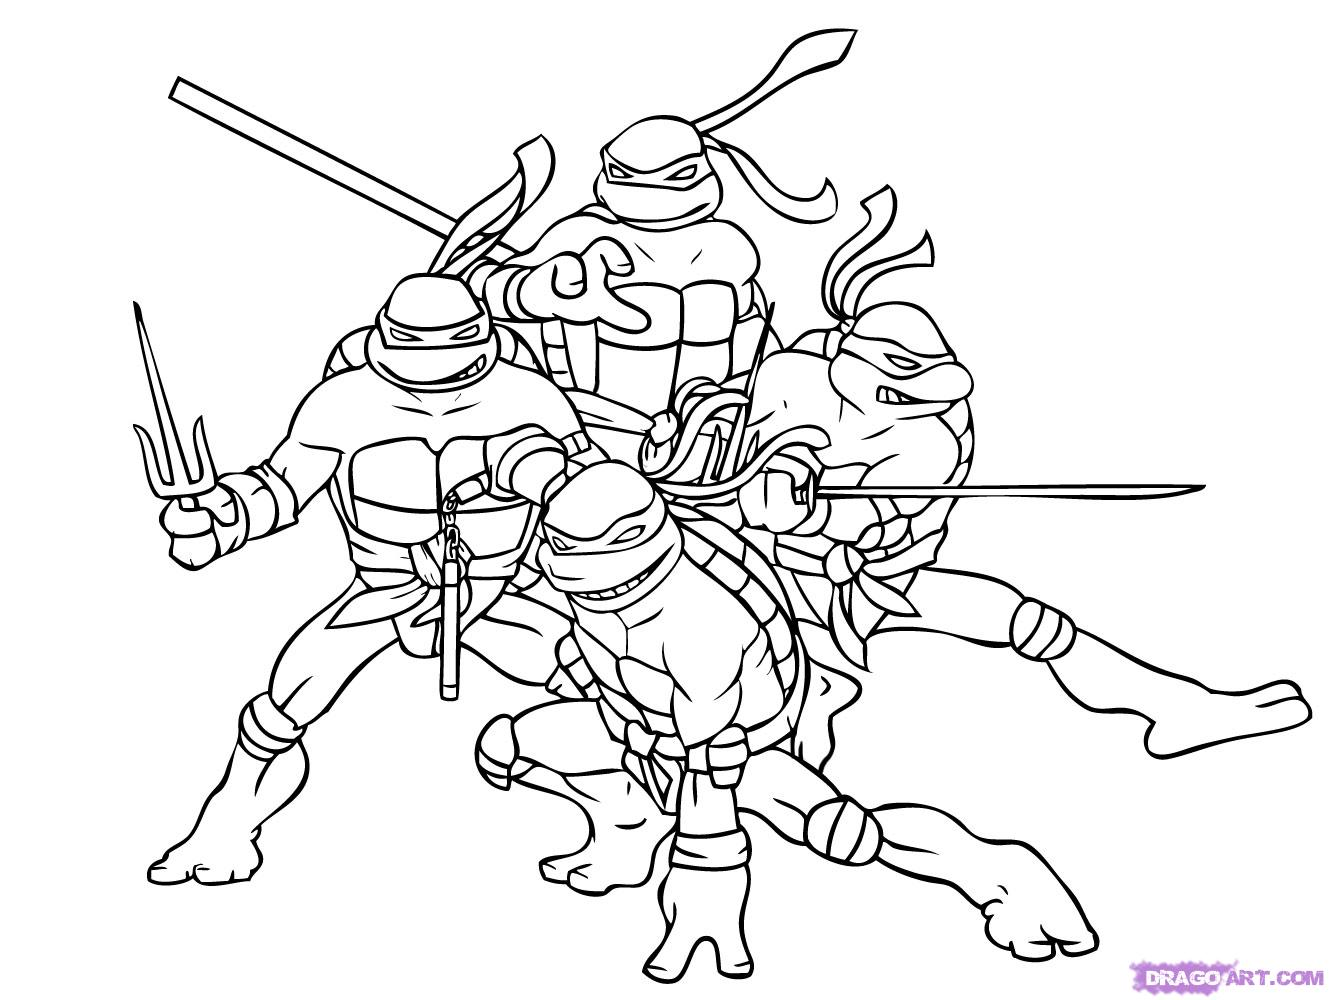 free ninja turtle coloring pages - photo#22